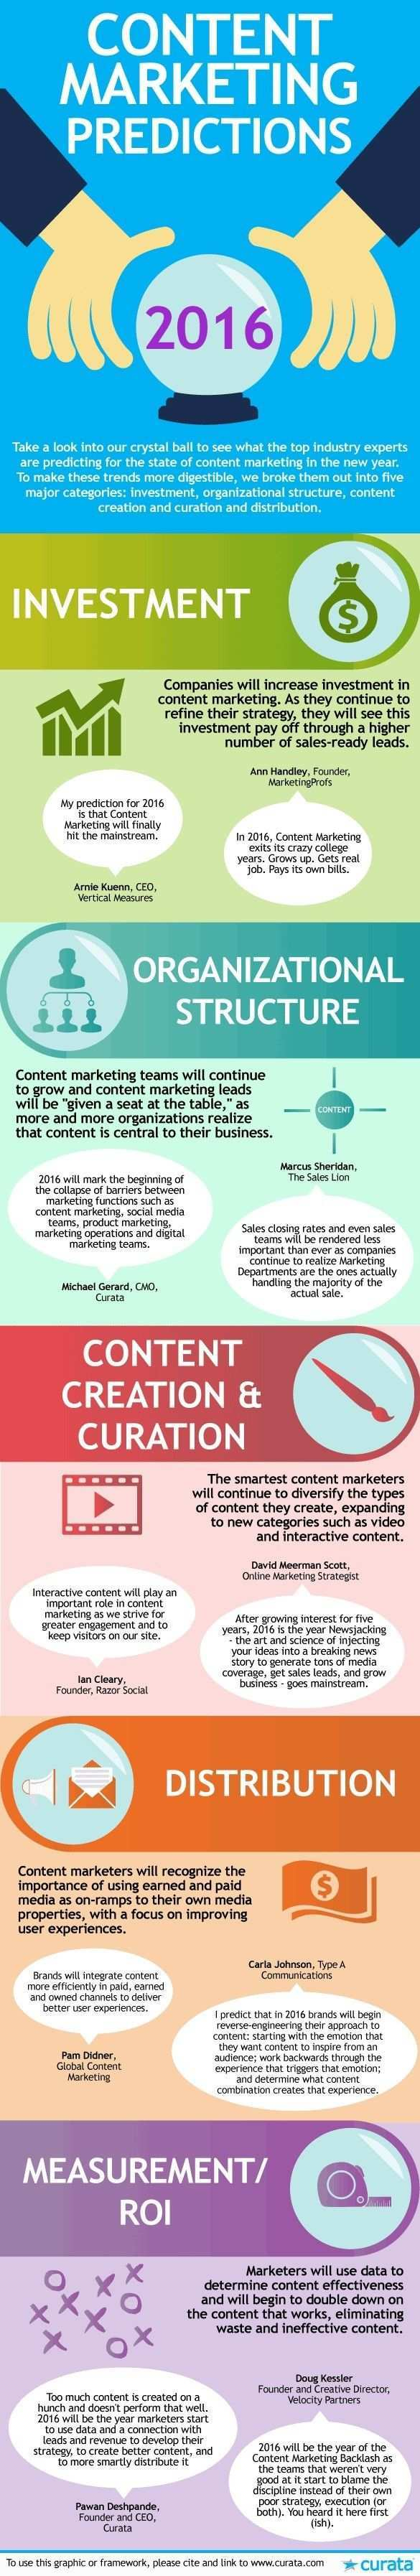 Content Marketing Predictions For 2016 Infographic Content Marketing Infographic Marketing Internet Marketing Infographics